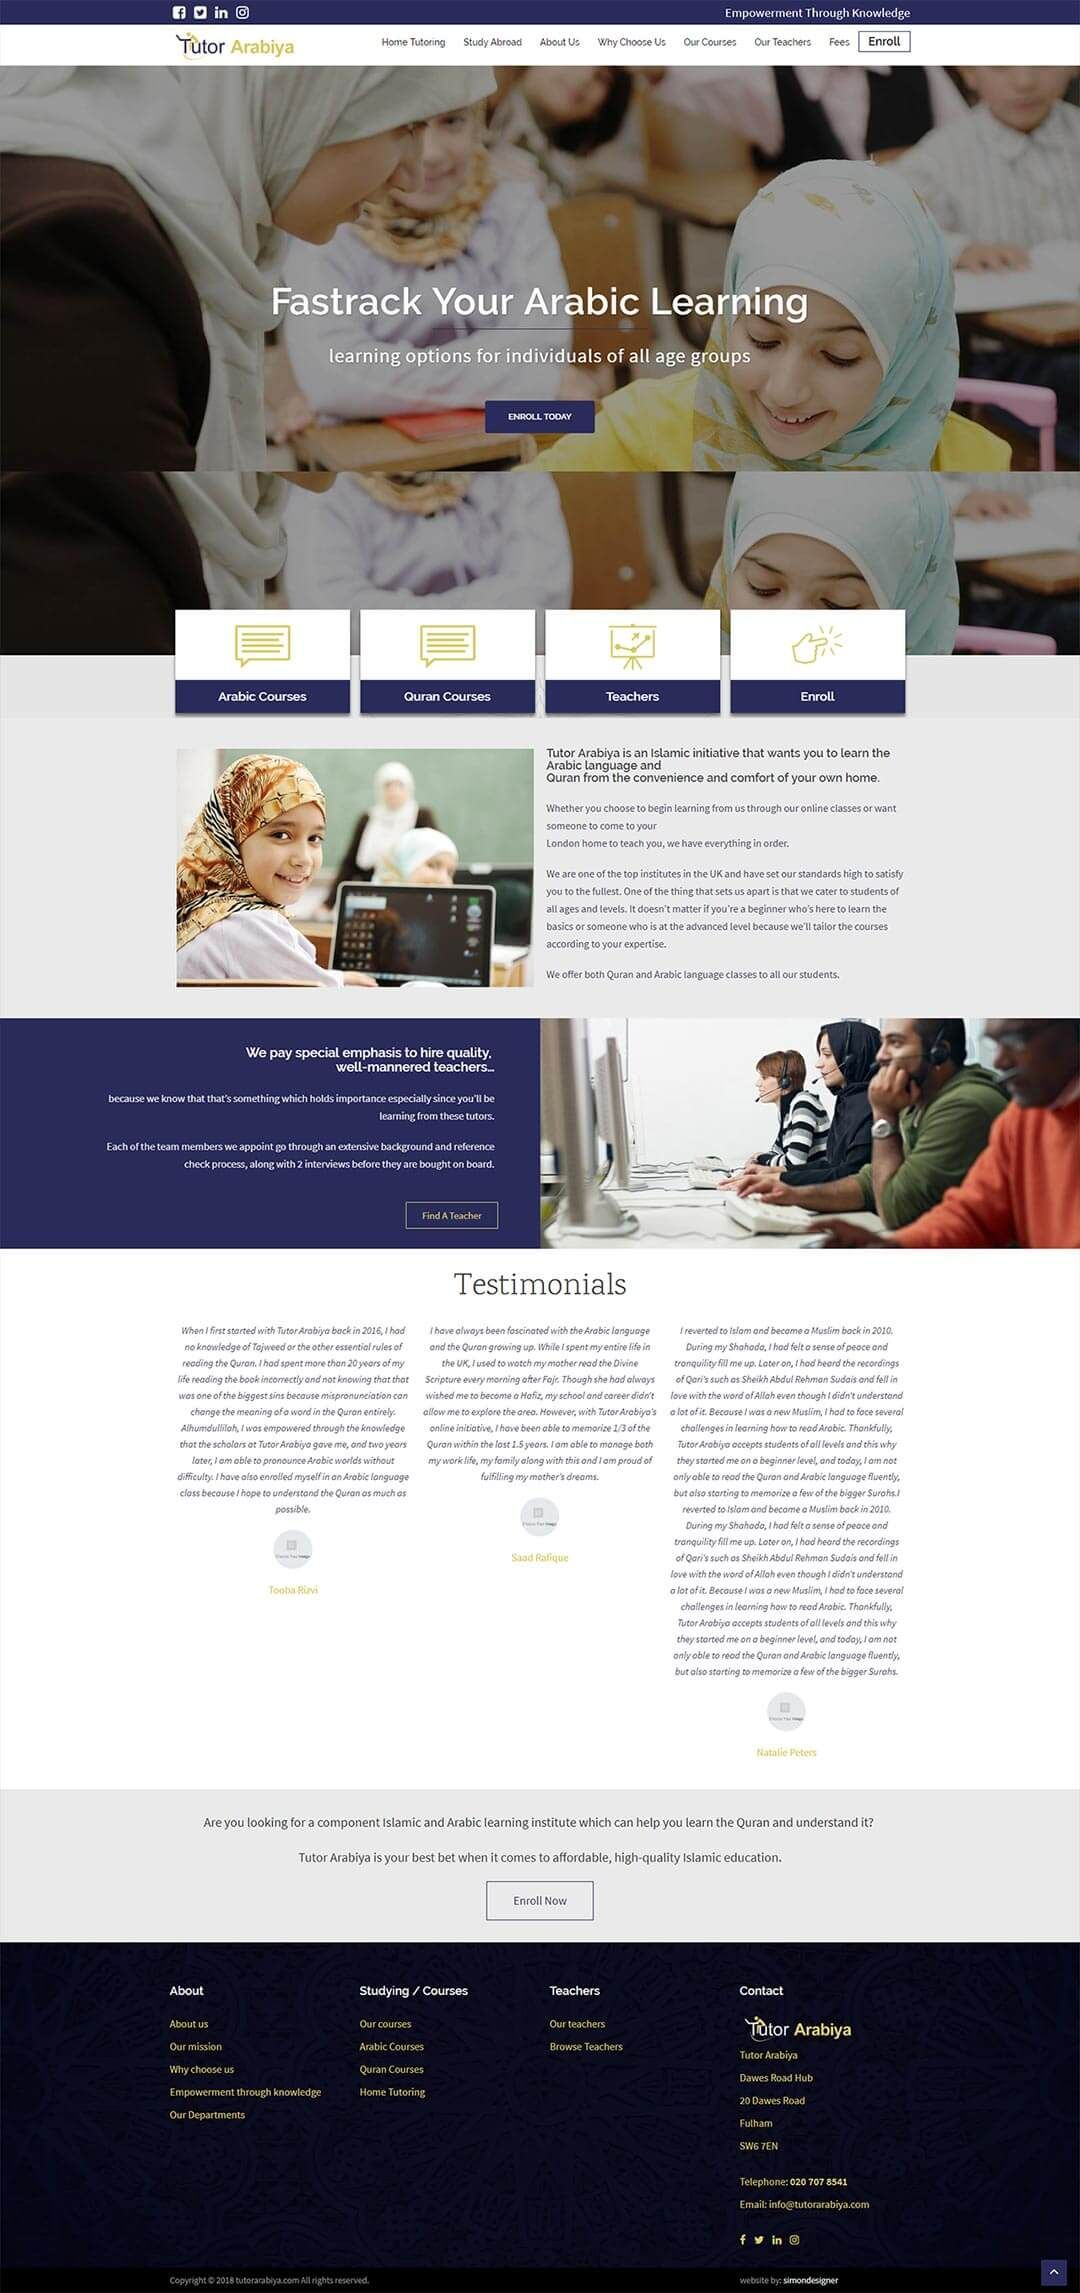 Bespoke Website Design And Development For Tutor Arabiya Arabic And Quran Tutoring Compa Search Engine Optimization Seo Website Design Search Engine Marketing